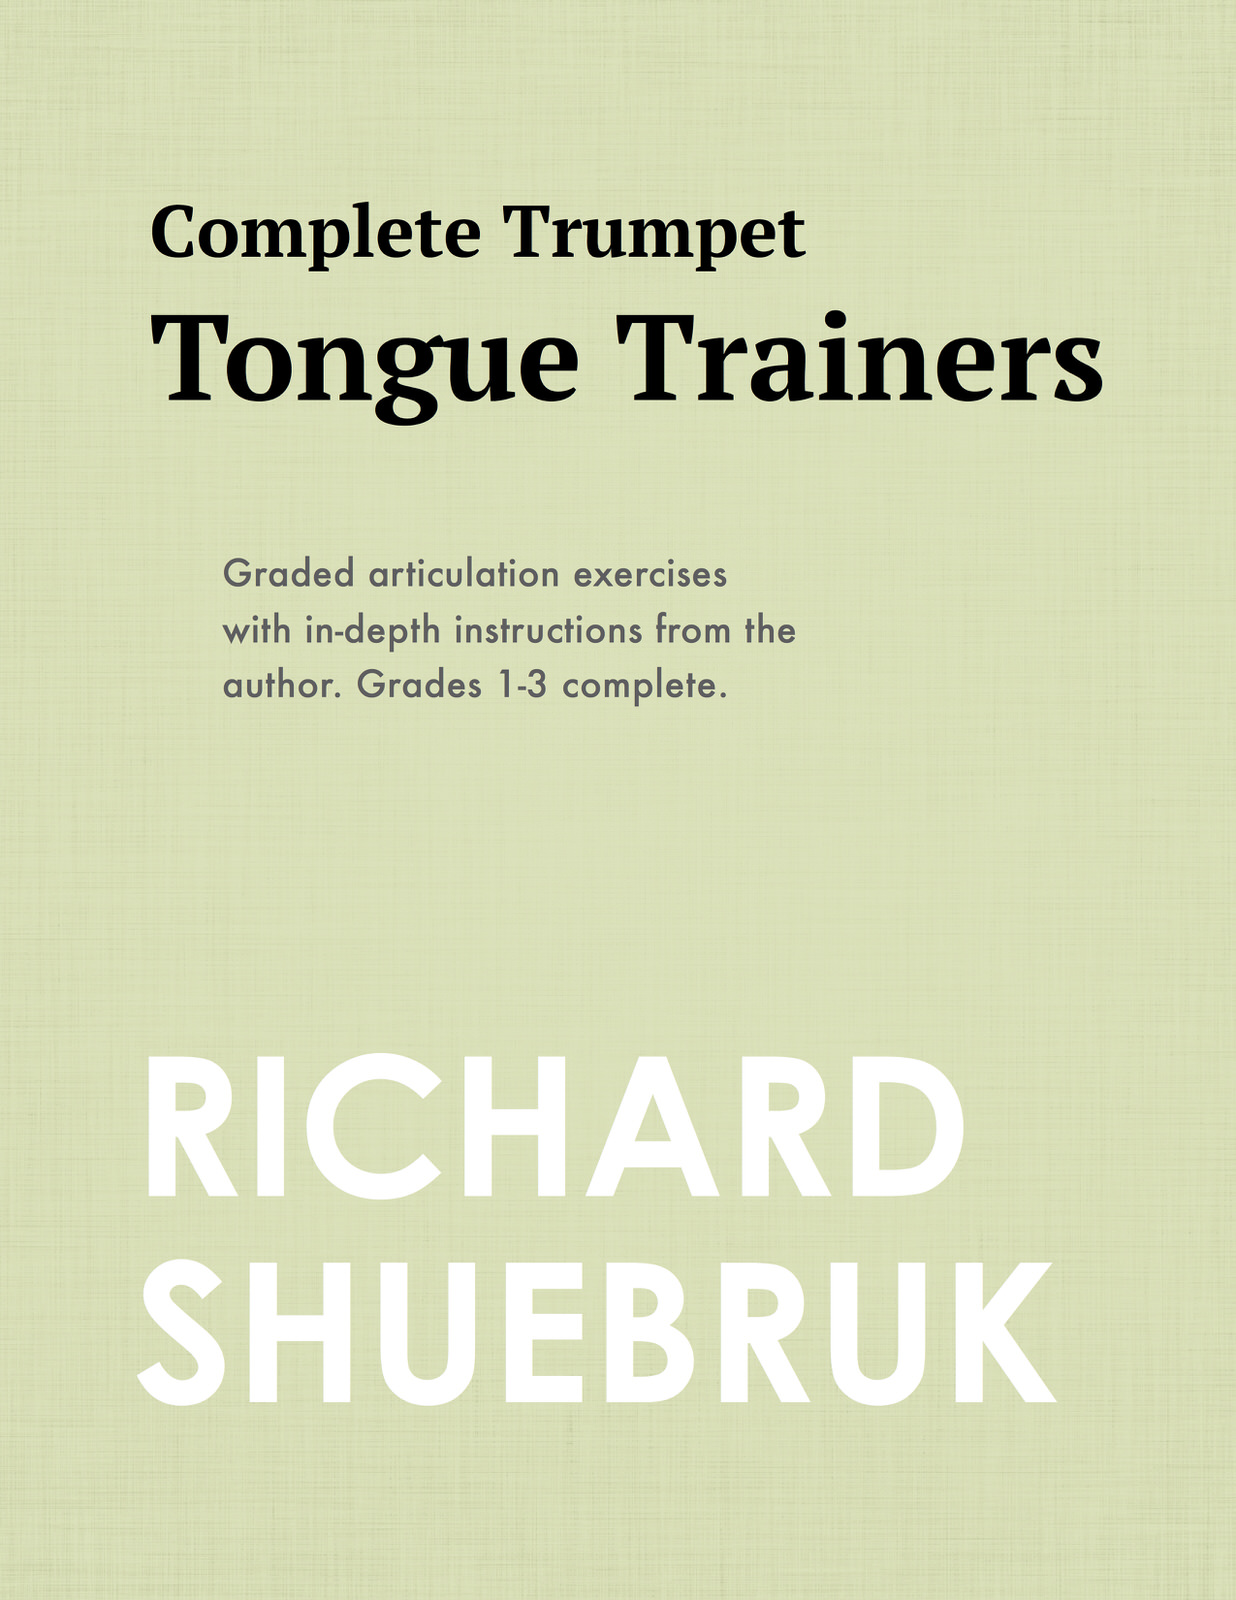 Shuebruk, Tongue Trainers for Trumpet-p01